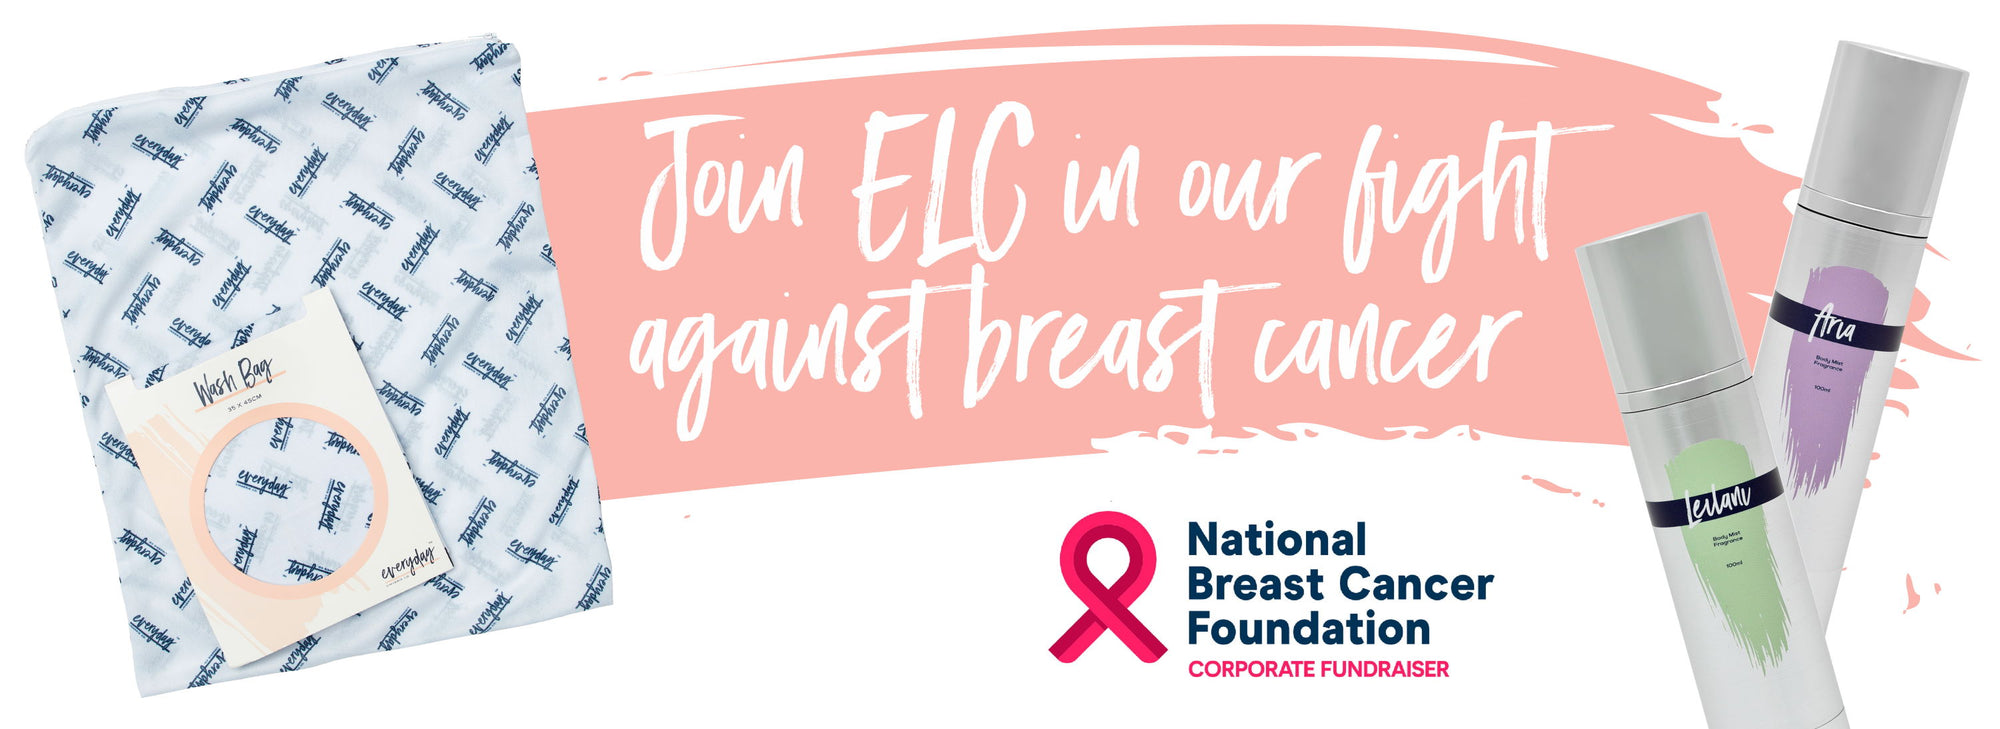 Image of Everyday Lingerie Co. supporting woman's breast cancer.